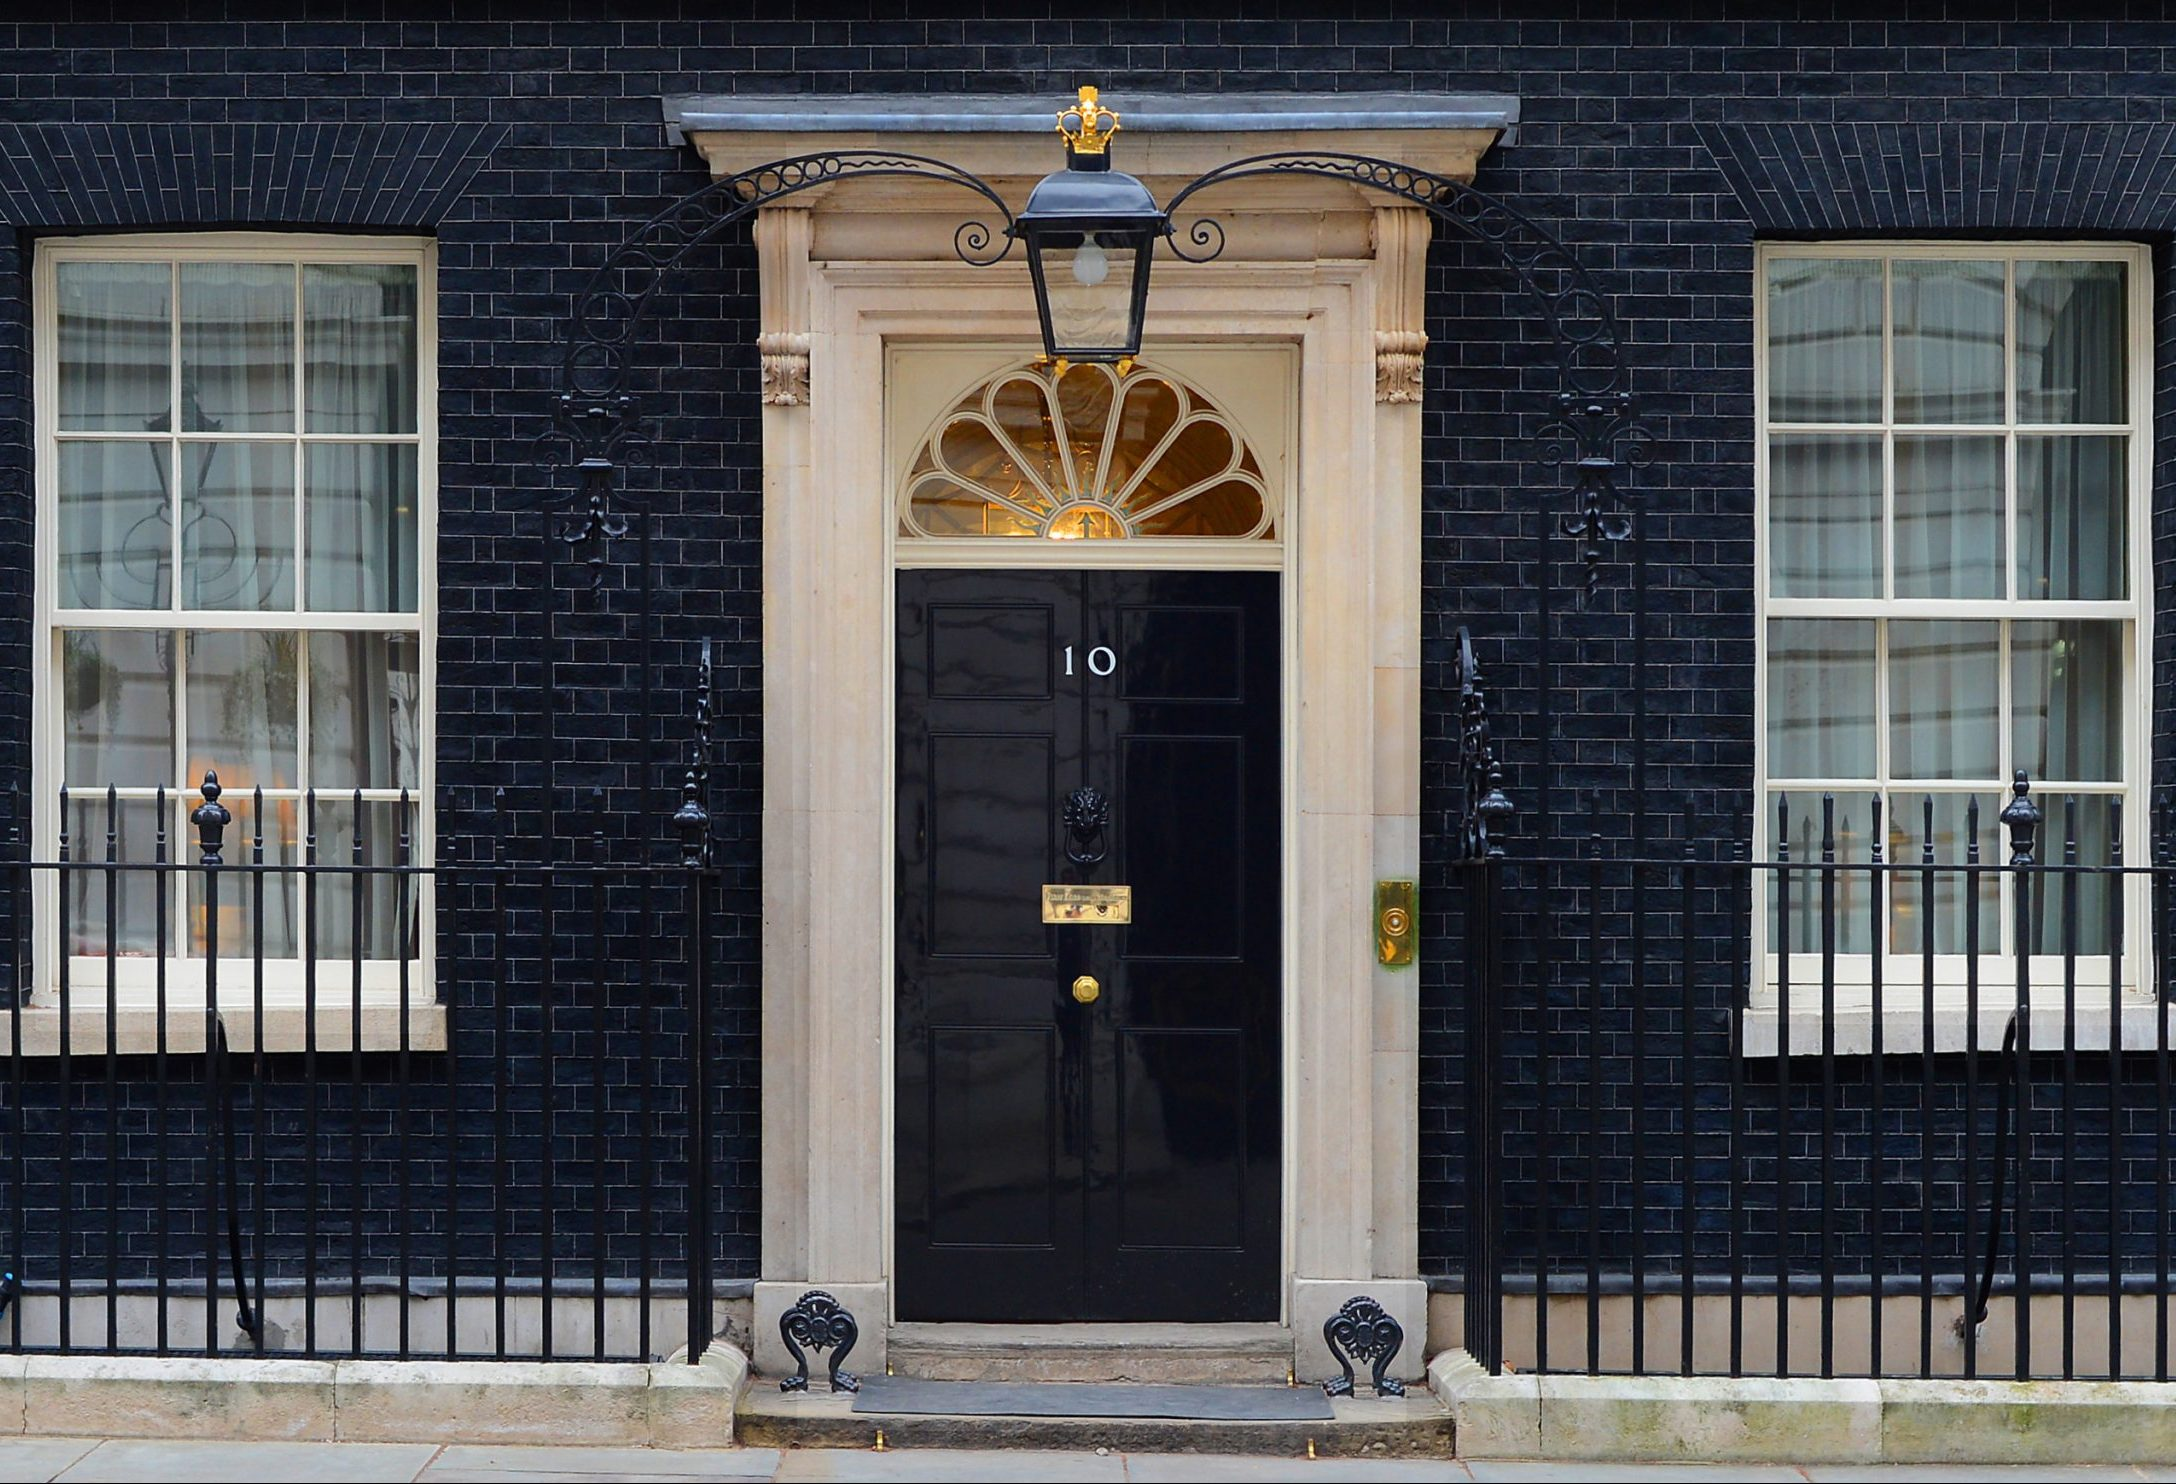 Hardware Pieces Inspired By The Most Famous Doors hardware pieces inspired by the most famous doors Hardware Pieces Inspired By The Most Famous Doors In The World 10 Downing Street